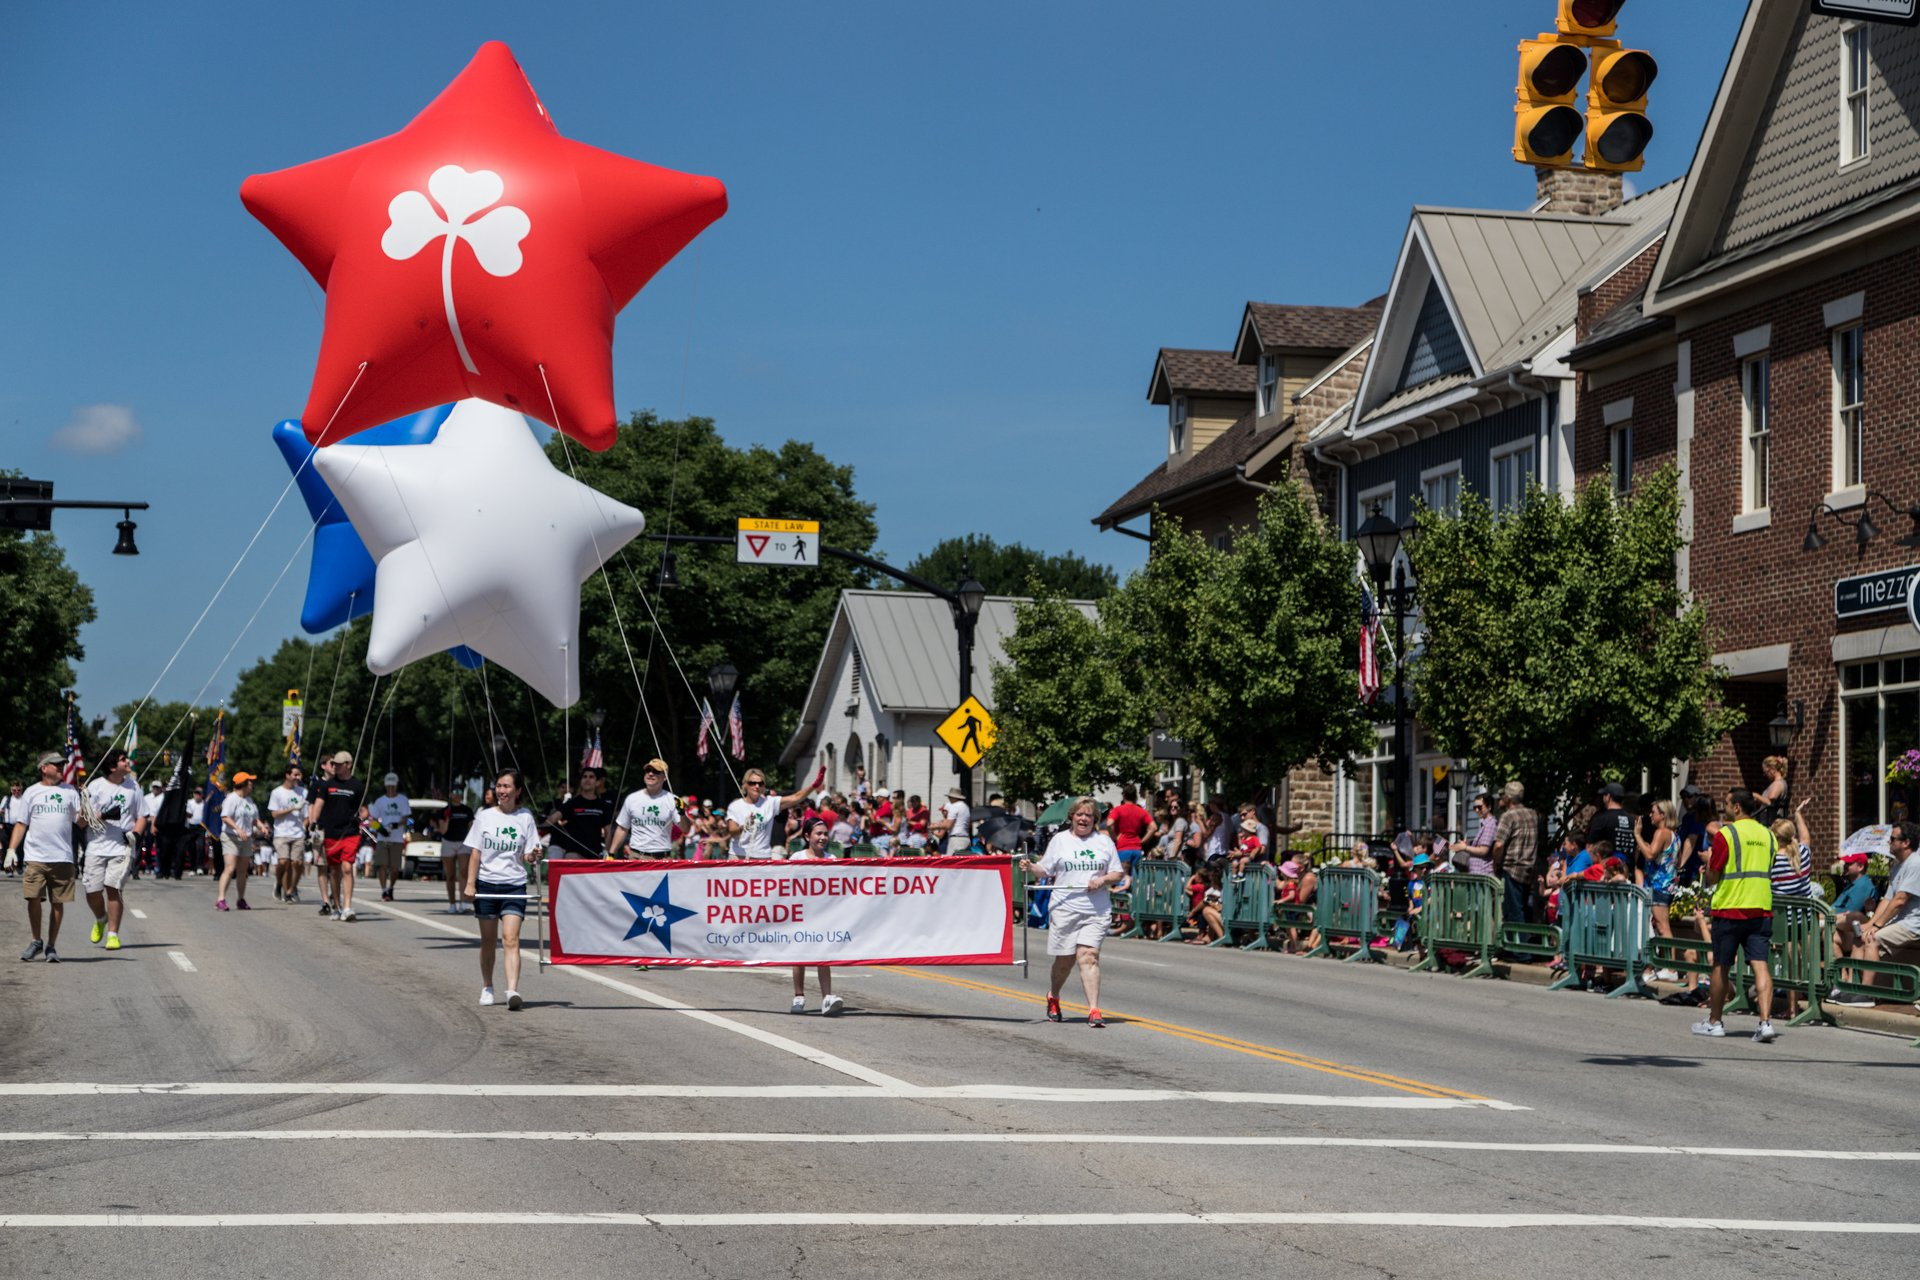 Independence Day Parade in Dublin, Ohio 2020